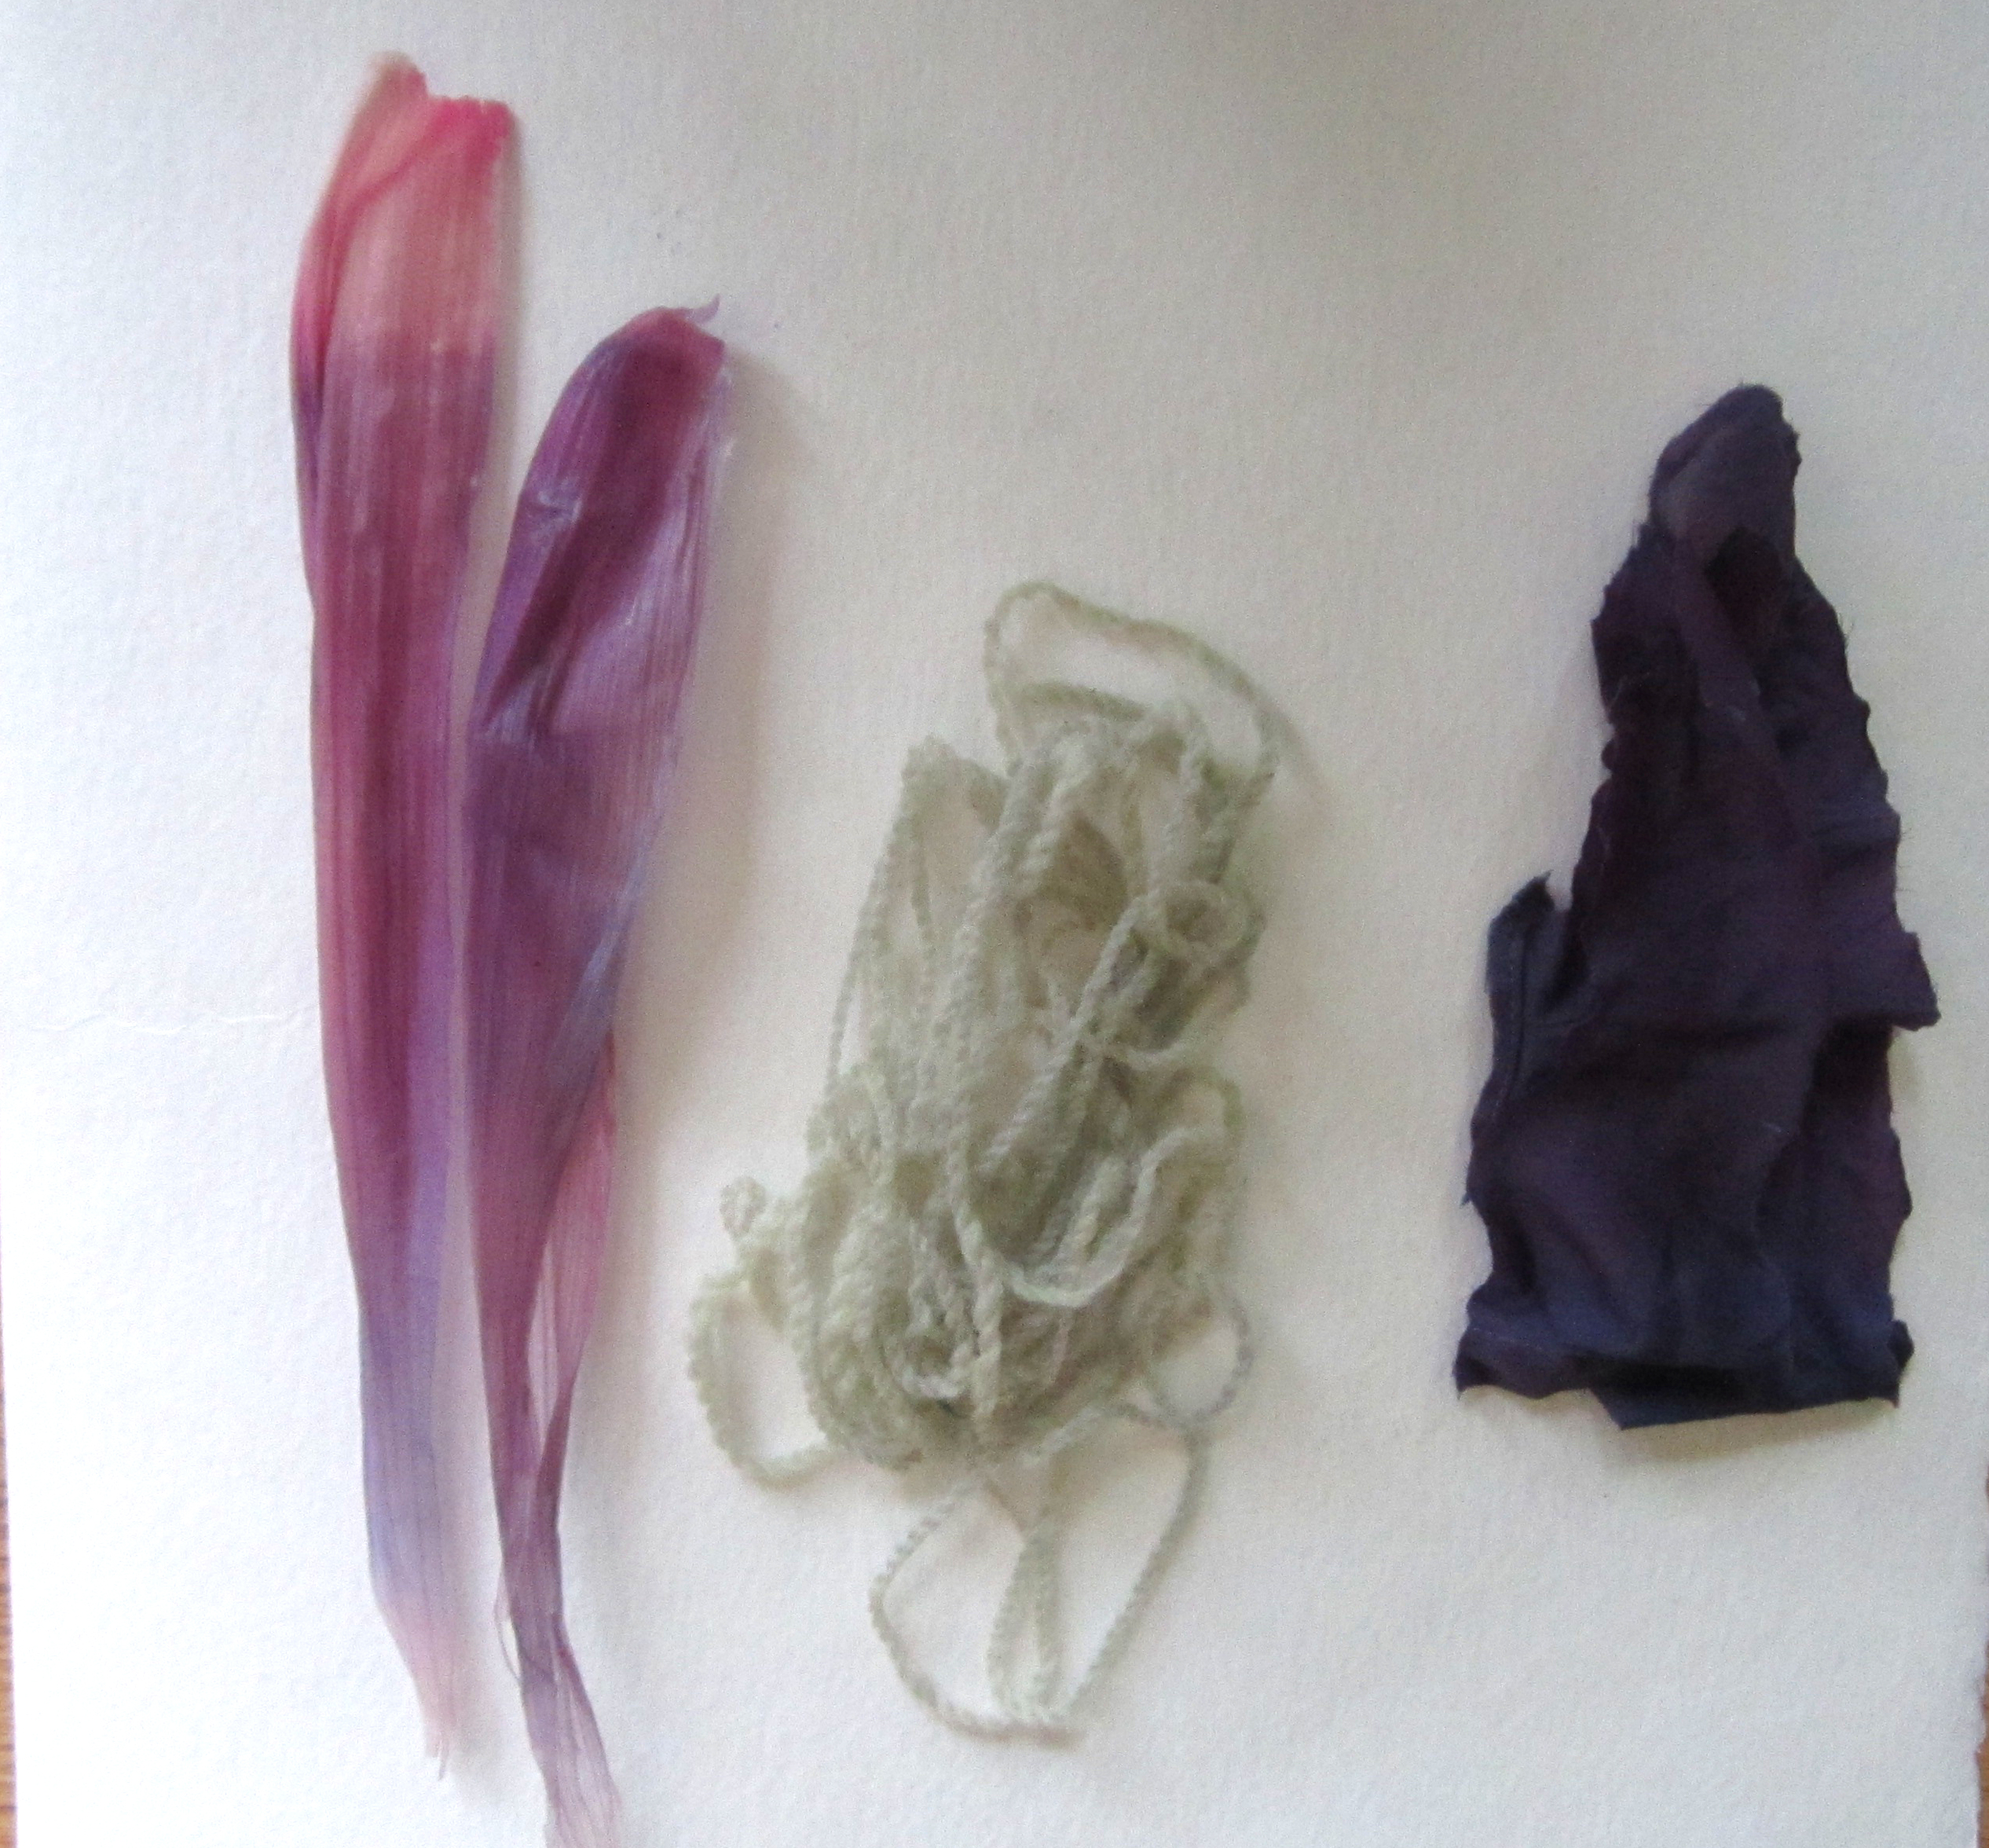 From right to left: cornhusks, wool, and silk dyed with red cabbage